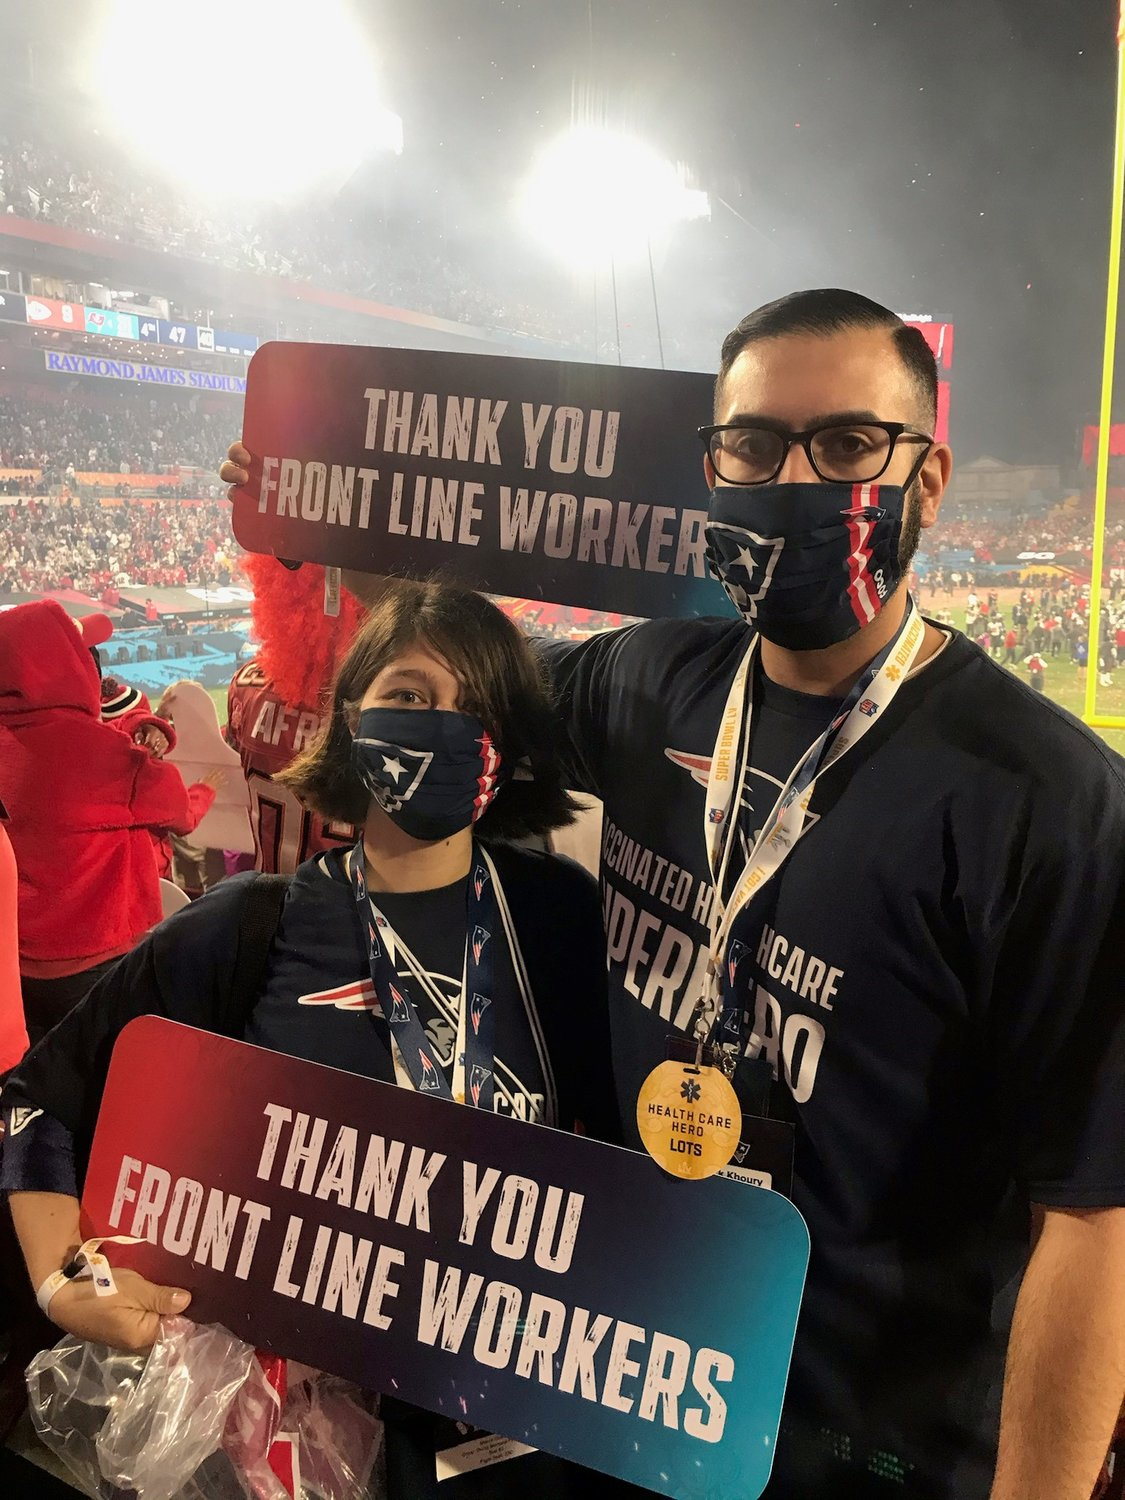 Maura Cosman, Emergency Department Tech, and Patrick Khoury, Inpatient Nurse on the Balfour unit, at Super Bowl LV in Tampa Bay, FL